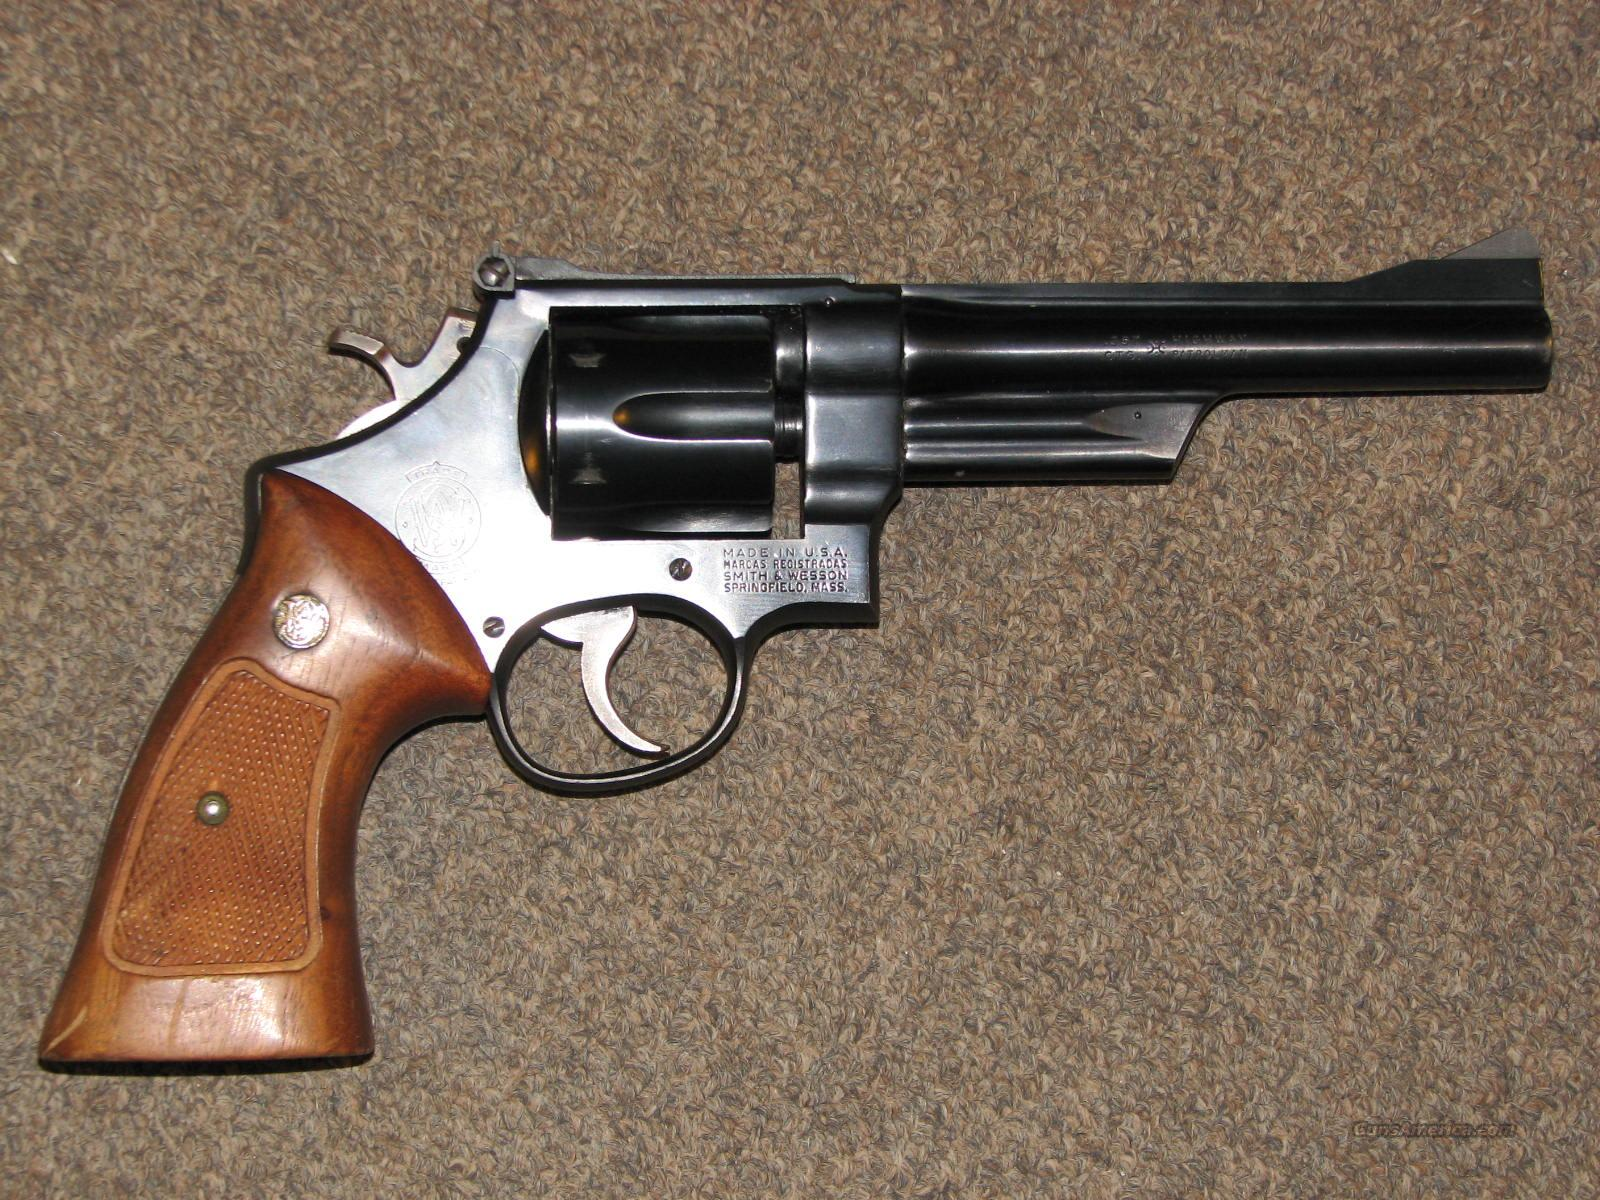 "SMITH & WESSON 28-2 .357 MAG - 6""  Guns > Pistols > Smith & Wesson Revolvers > Full Frame Revolver"